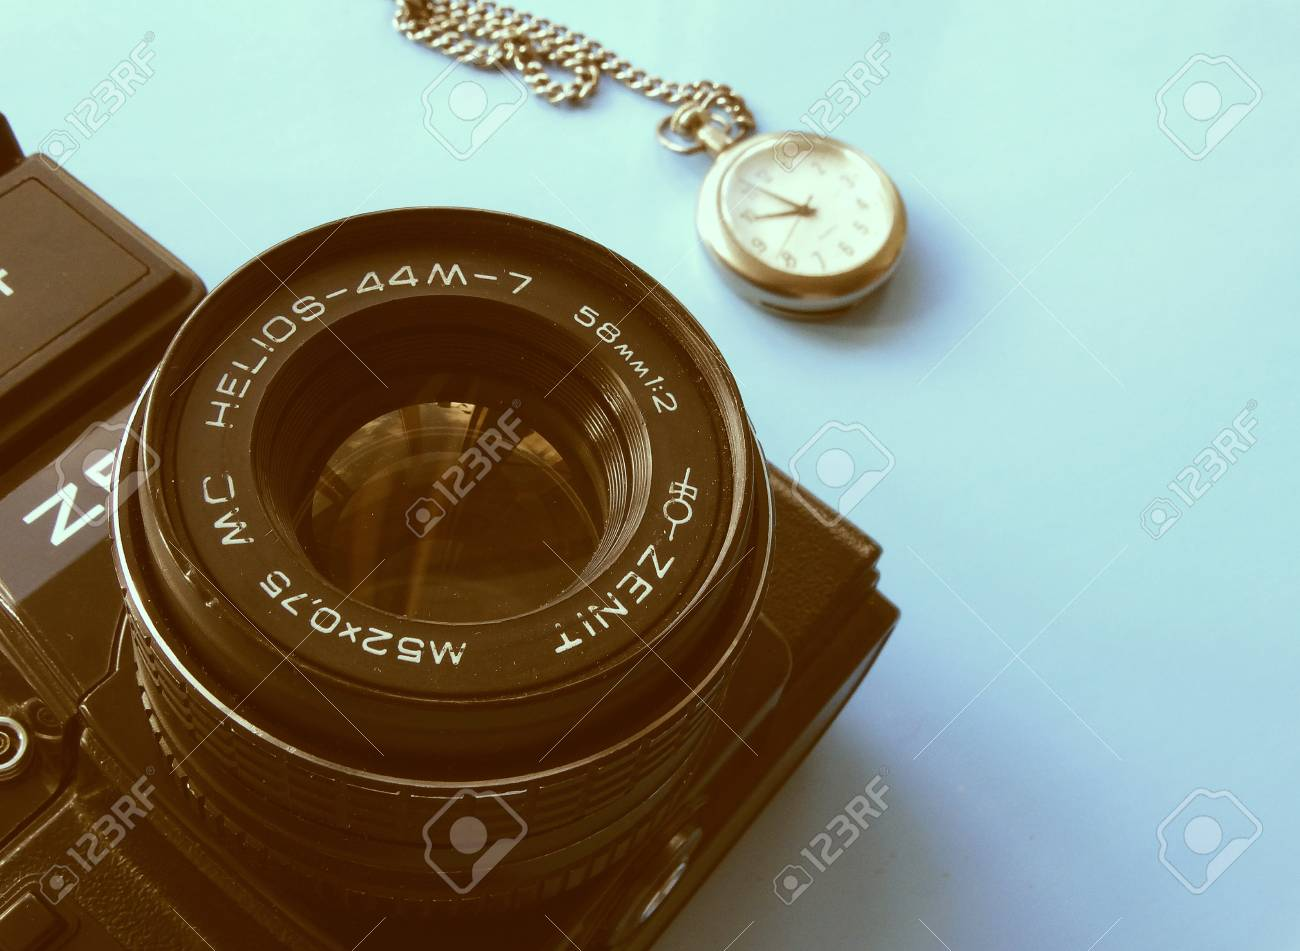 Old Camera Zenith Vintage Style Retro Background Wallpaper 1300x951